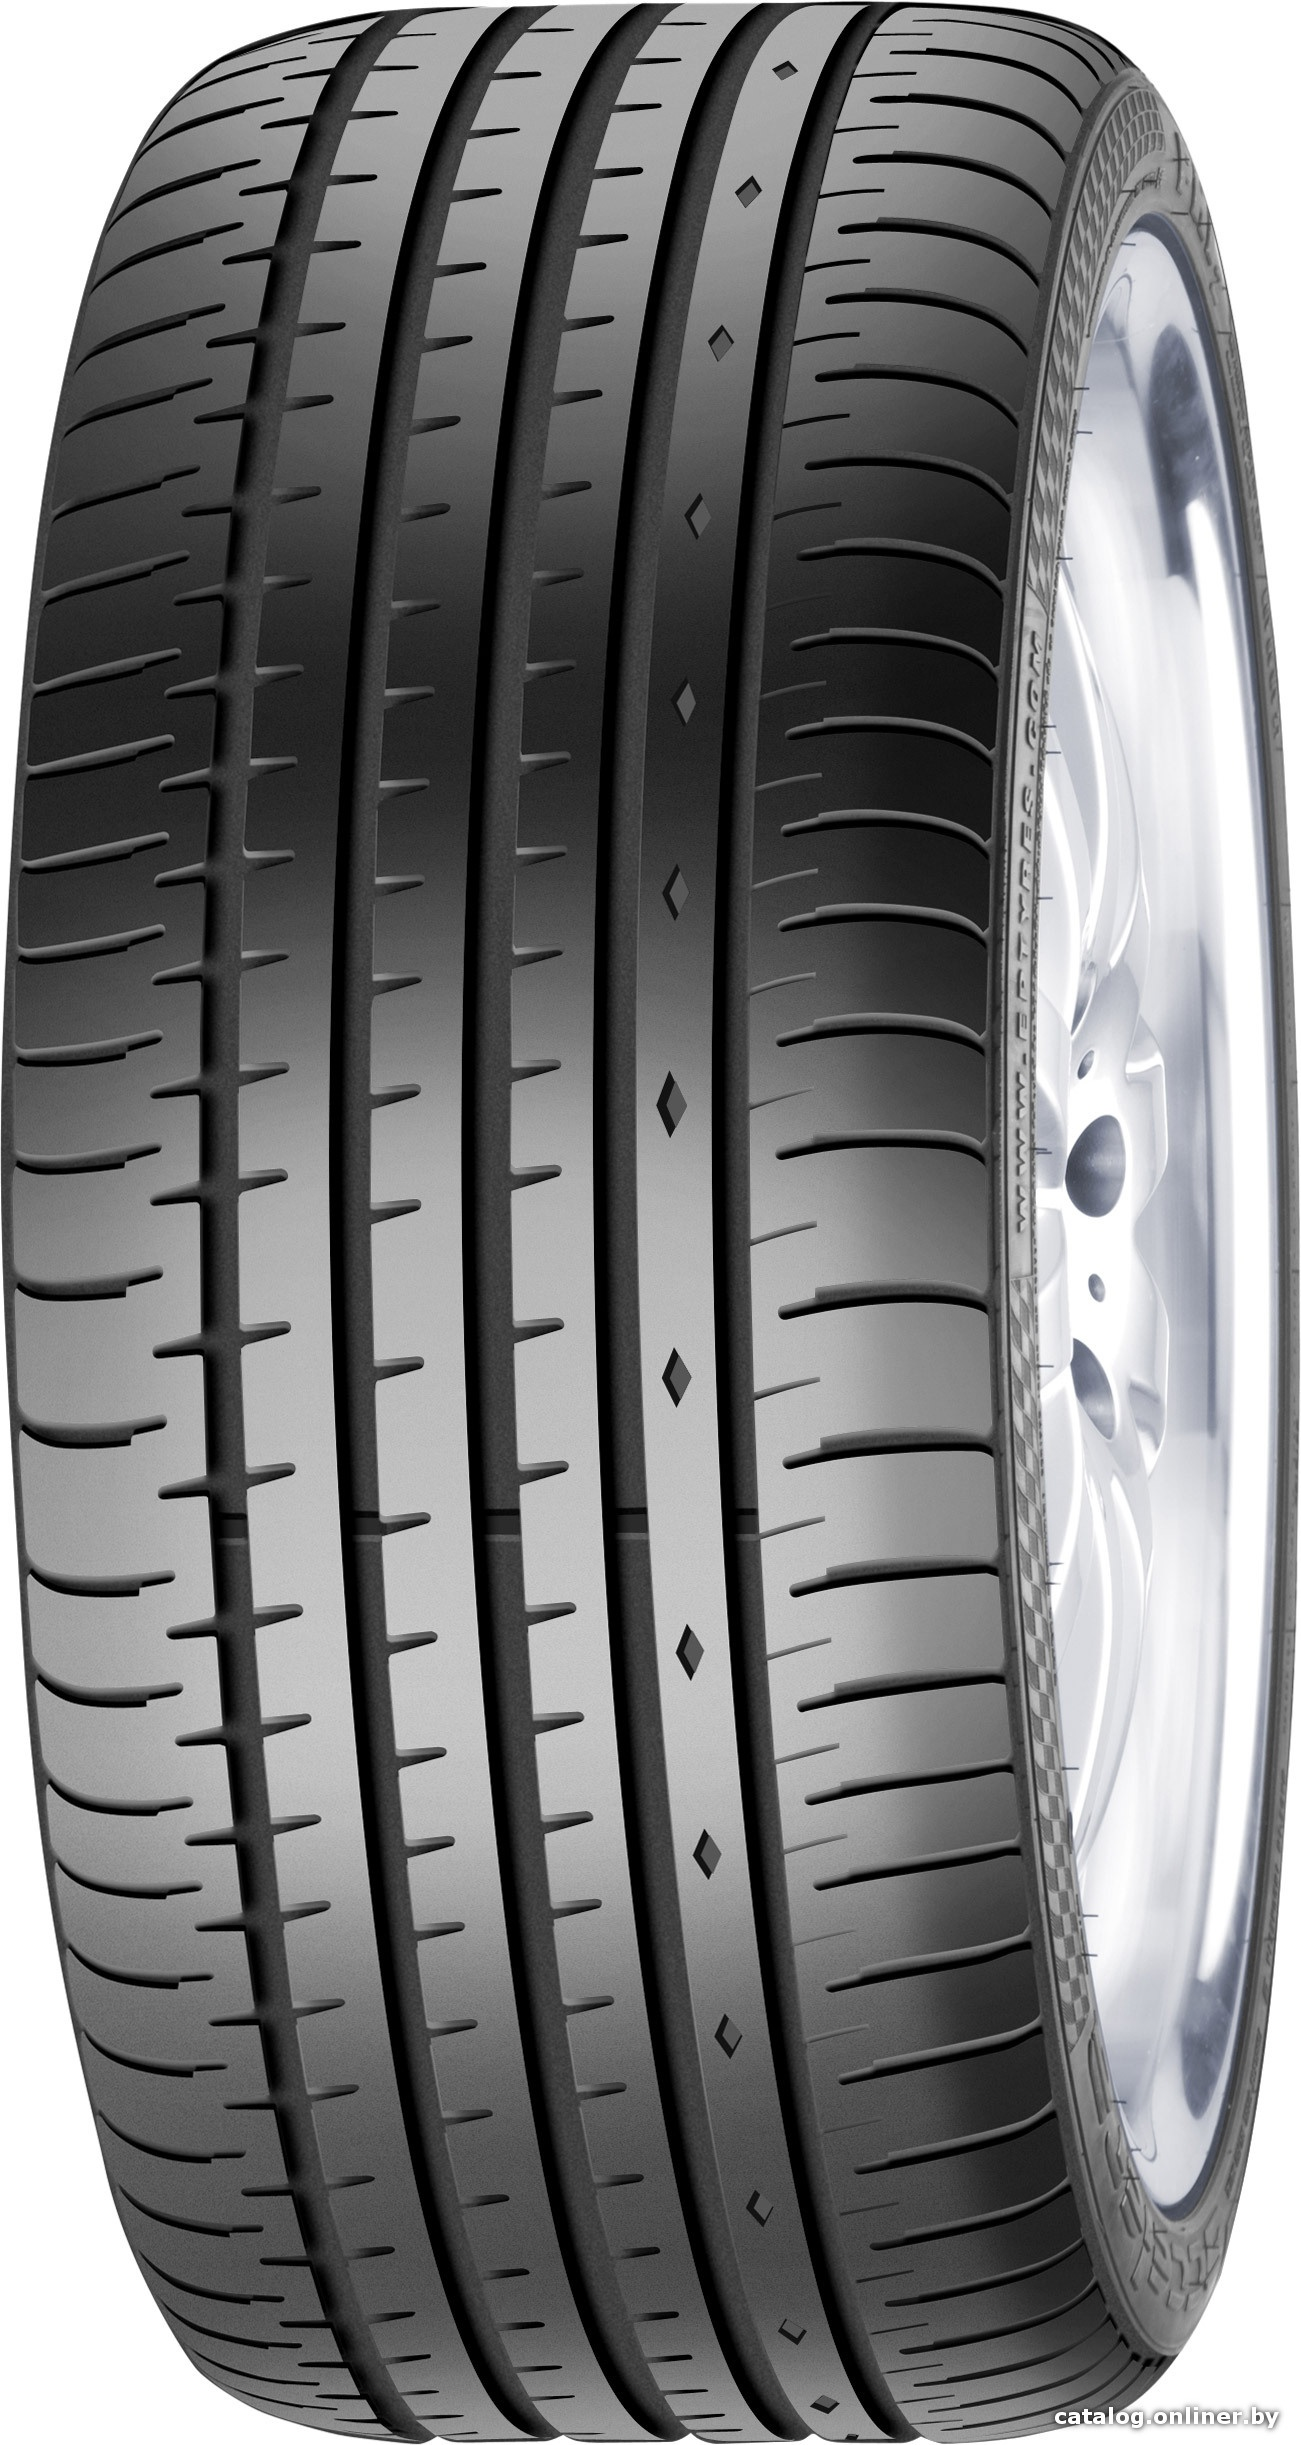 275/40R19 ACCELERA PHI-2 105Y XL (CAR SUMMER)